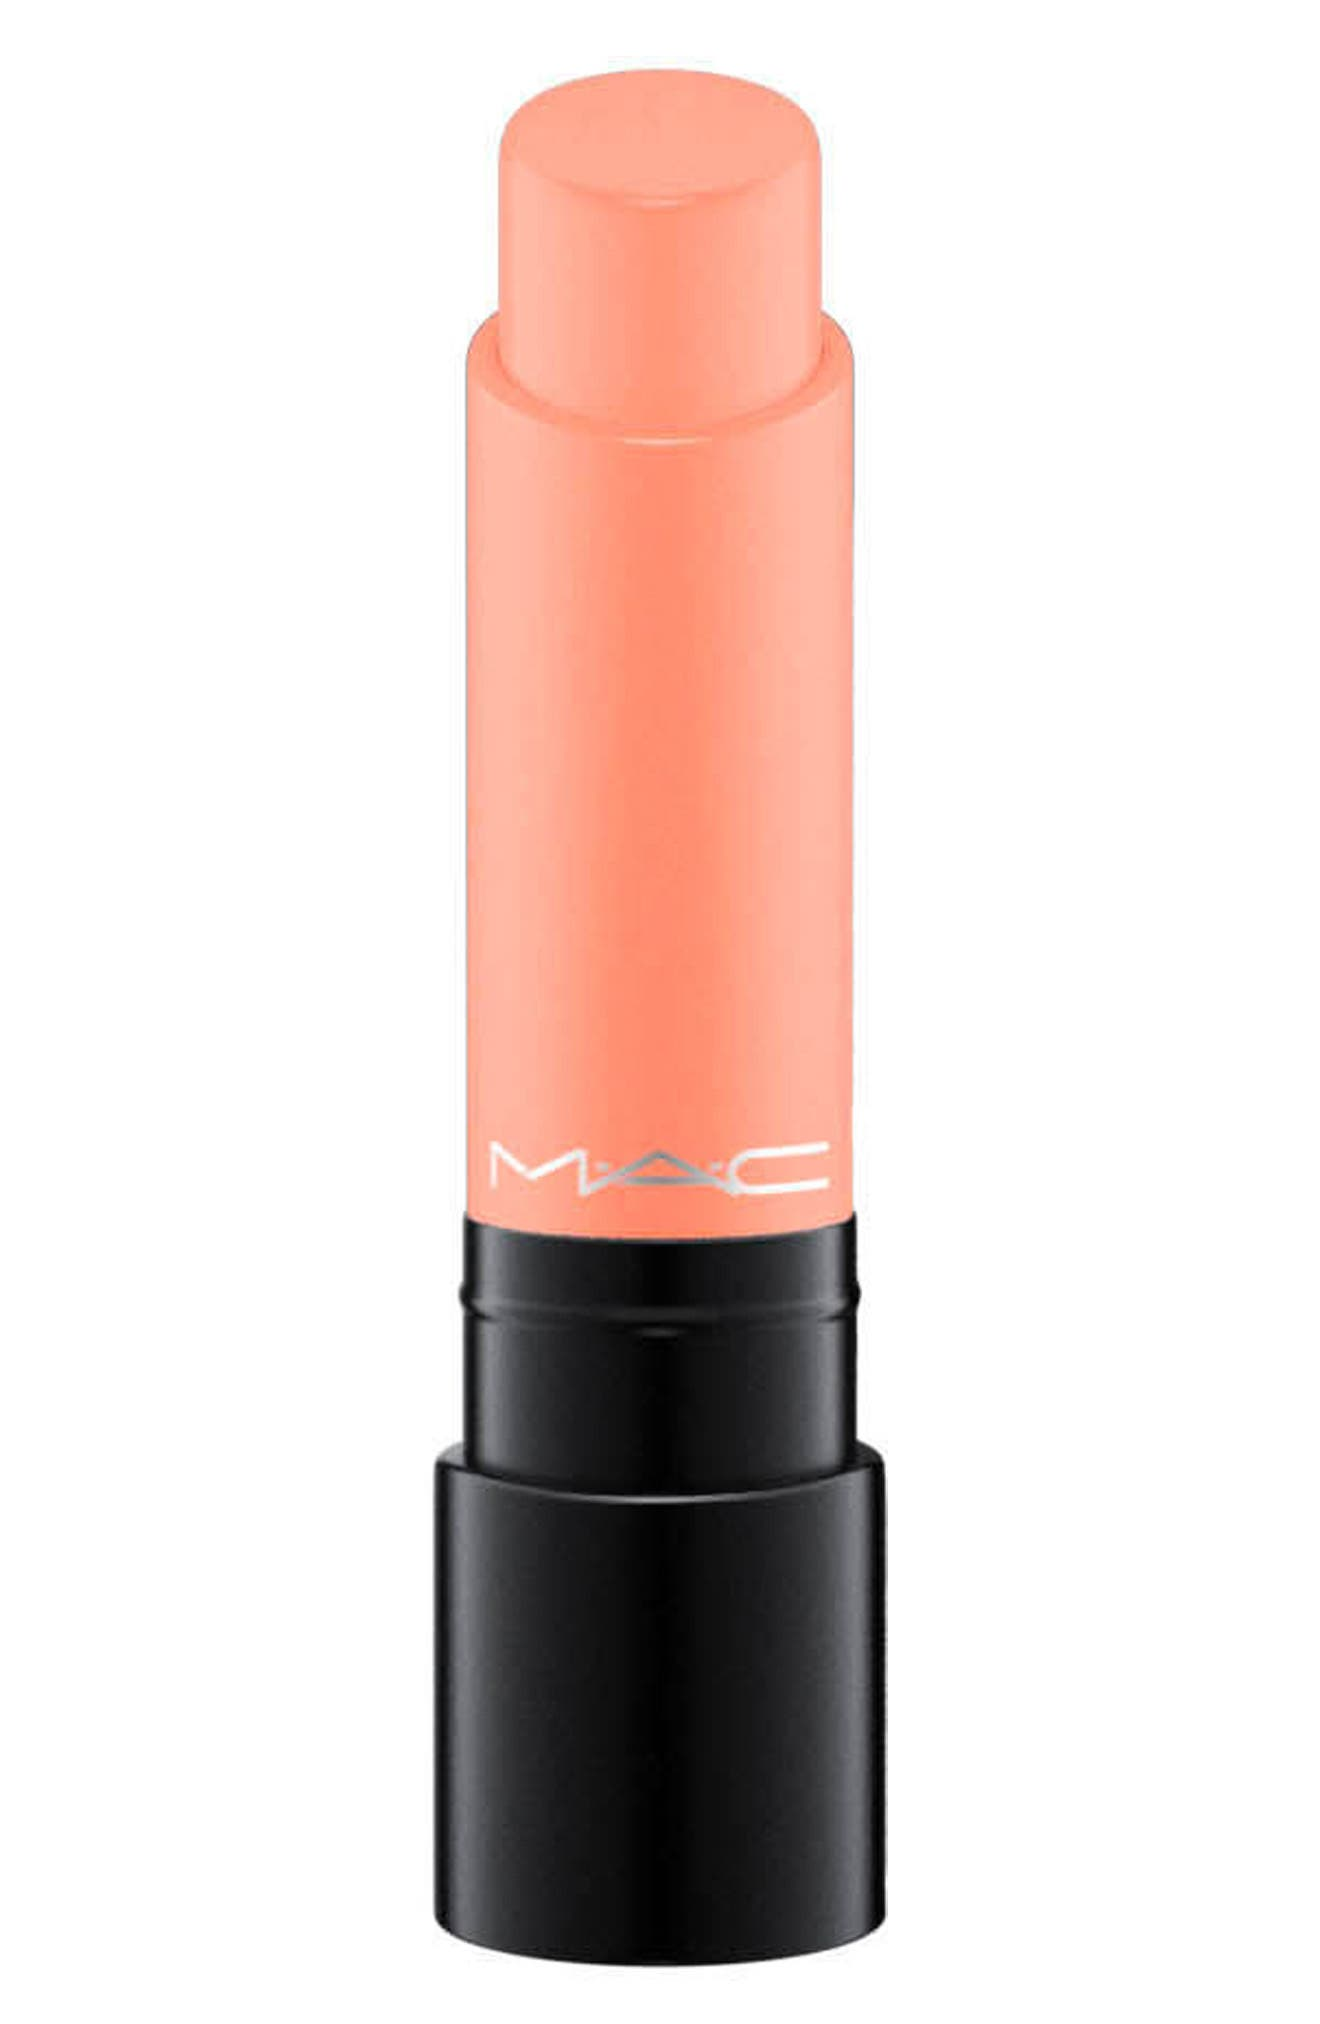 MAC Liptensity Lipstick,                             Main thumbnail 1, color,                             Bite O Georgia